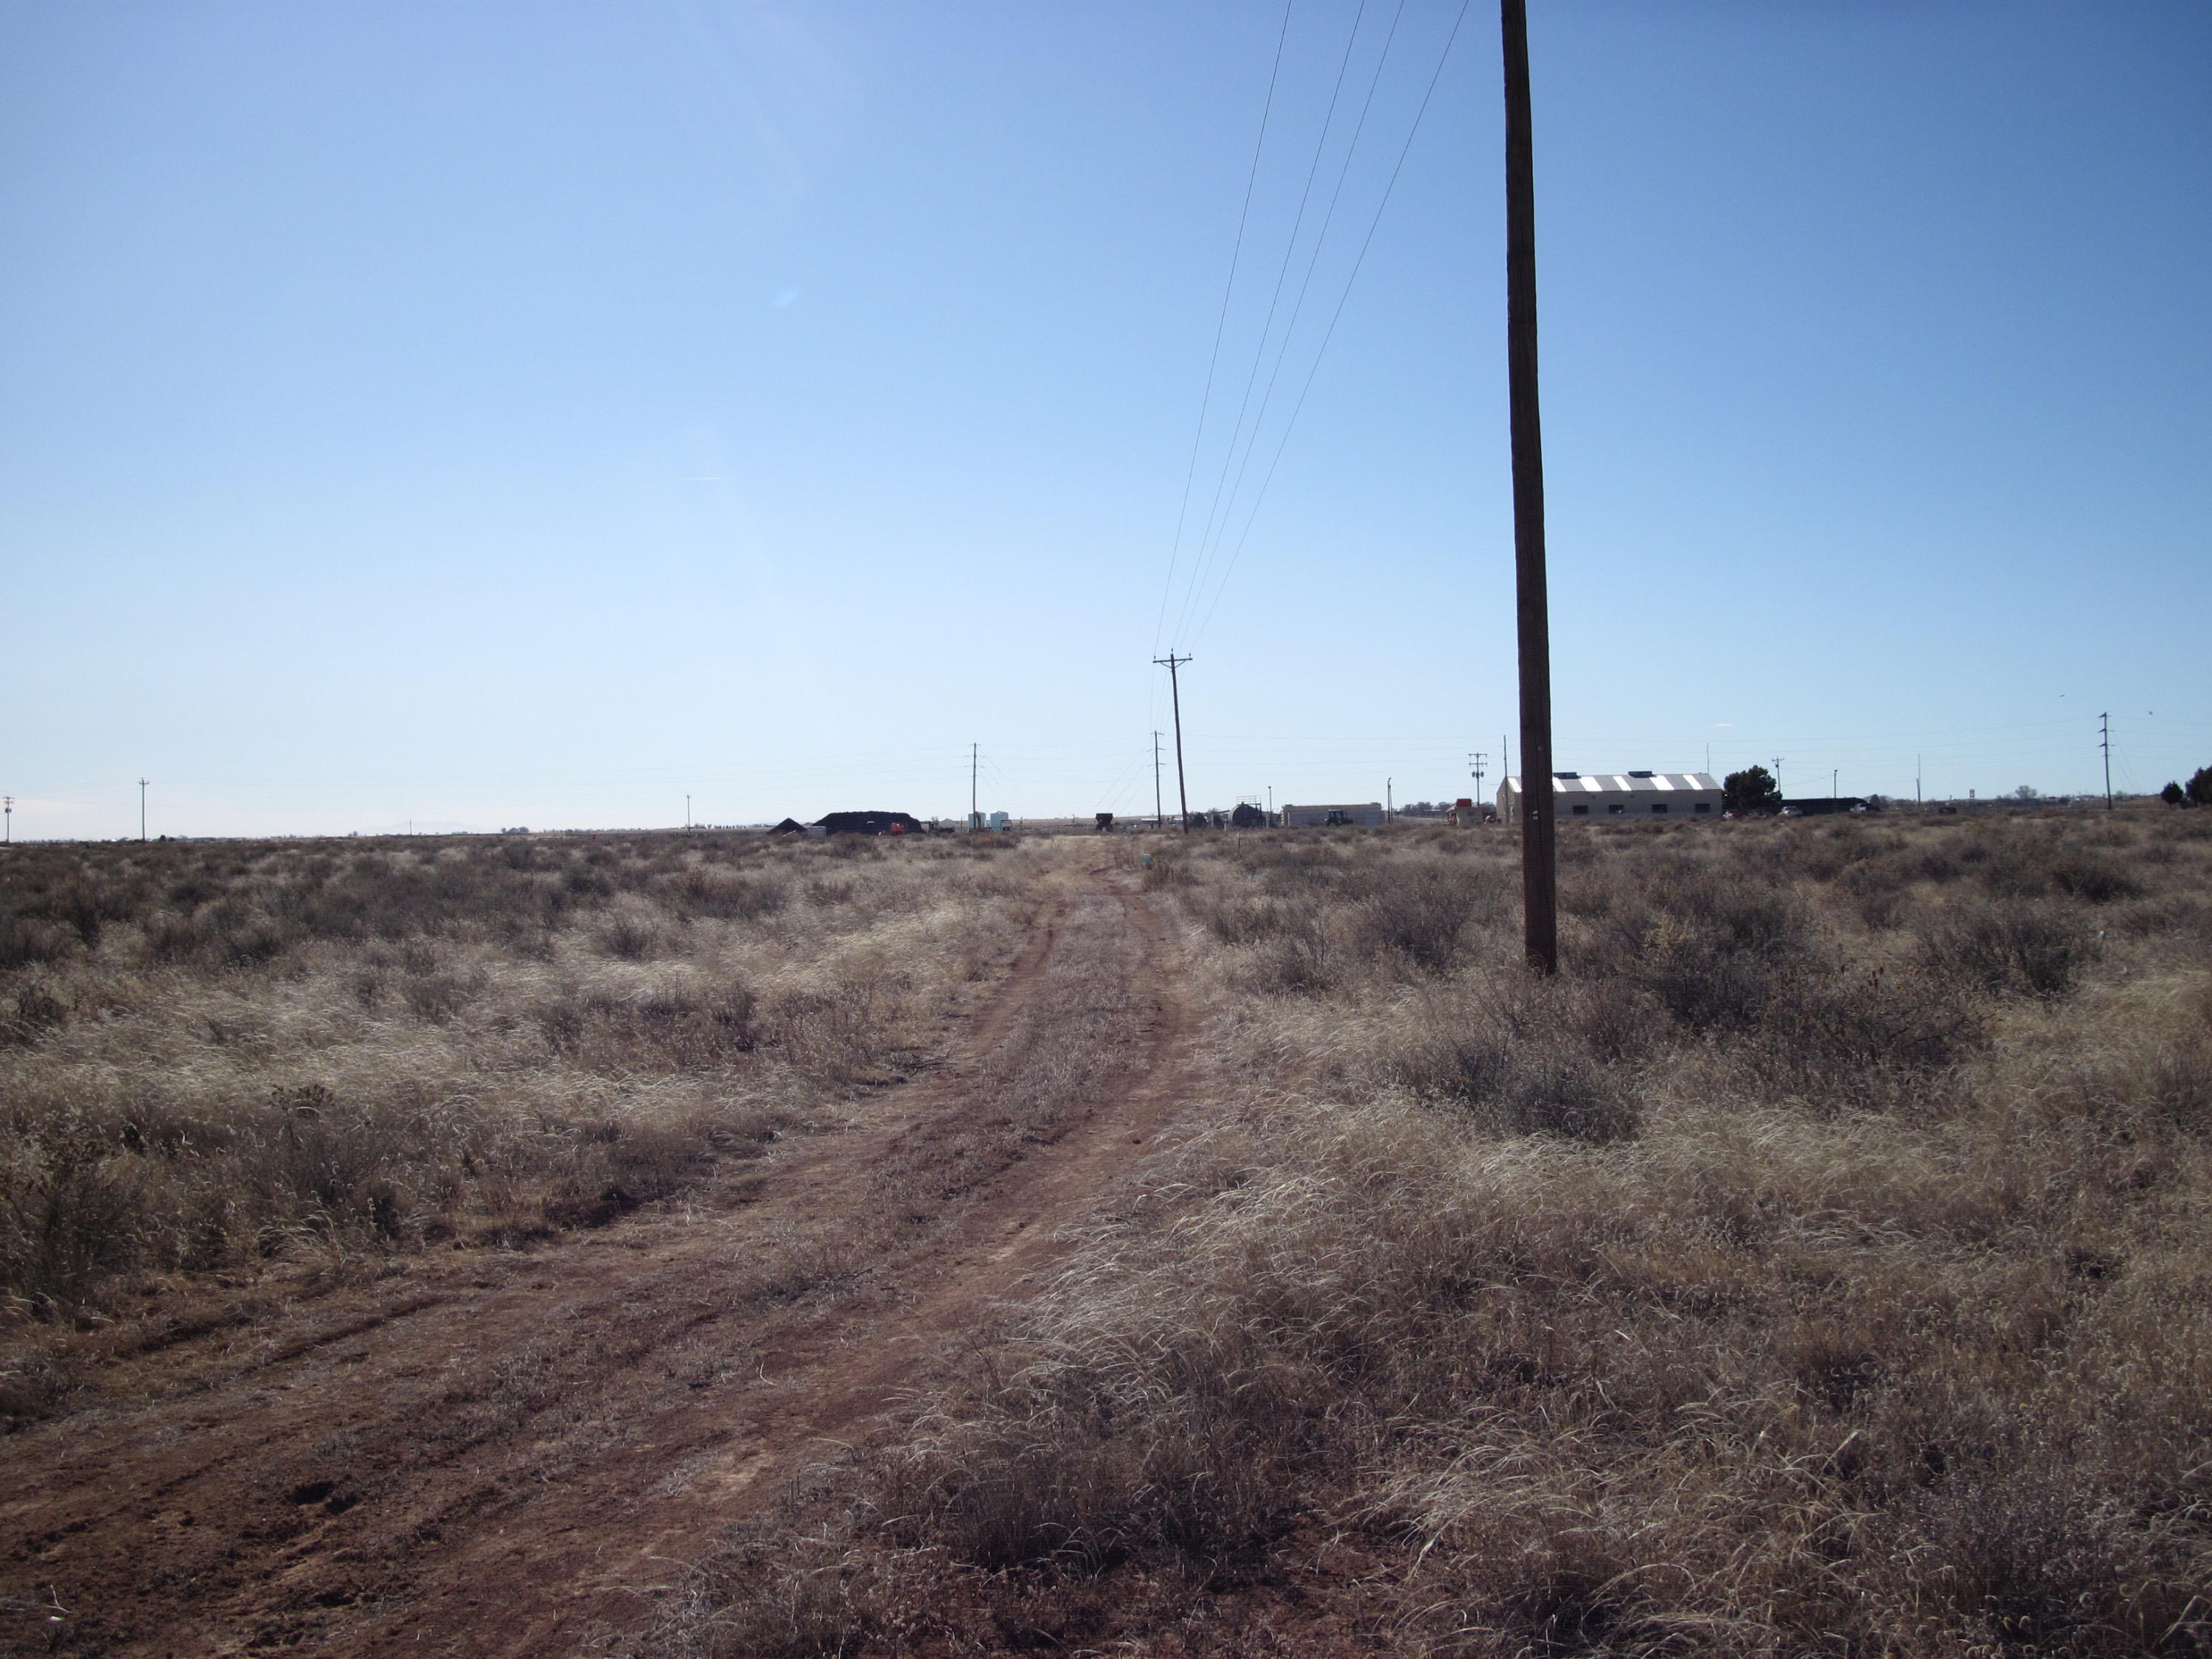 Fourth St, Salt Mission Avenue, Moriarty, NM 87035 - Moriarty, NM real estate listing